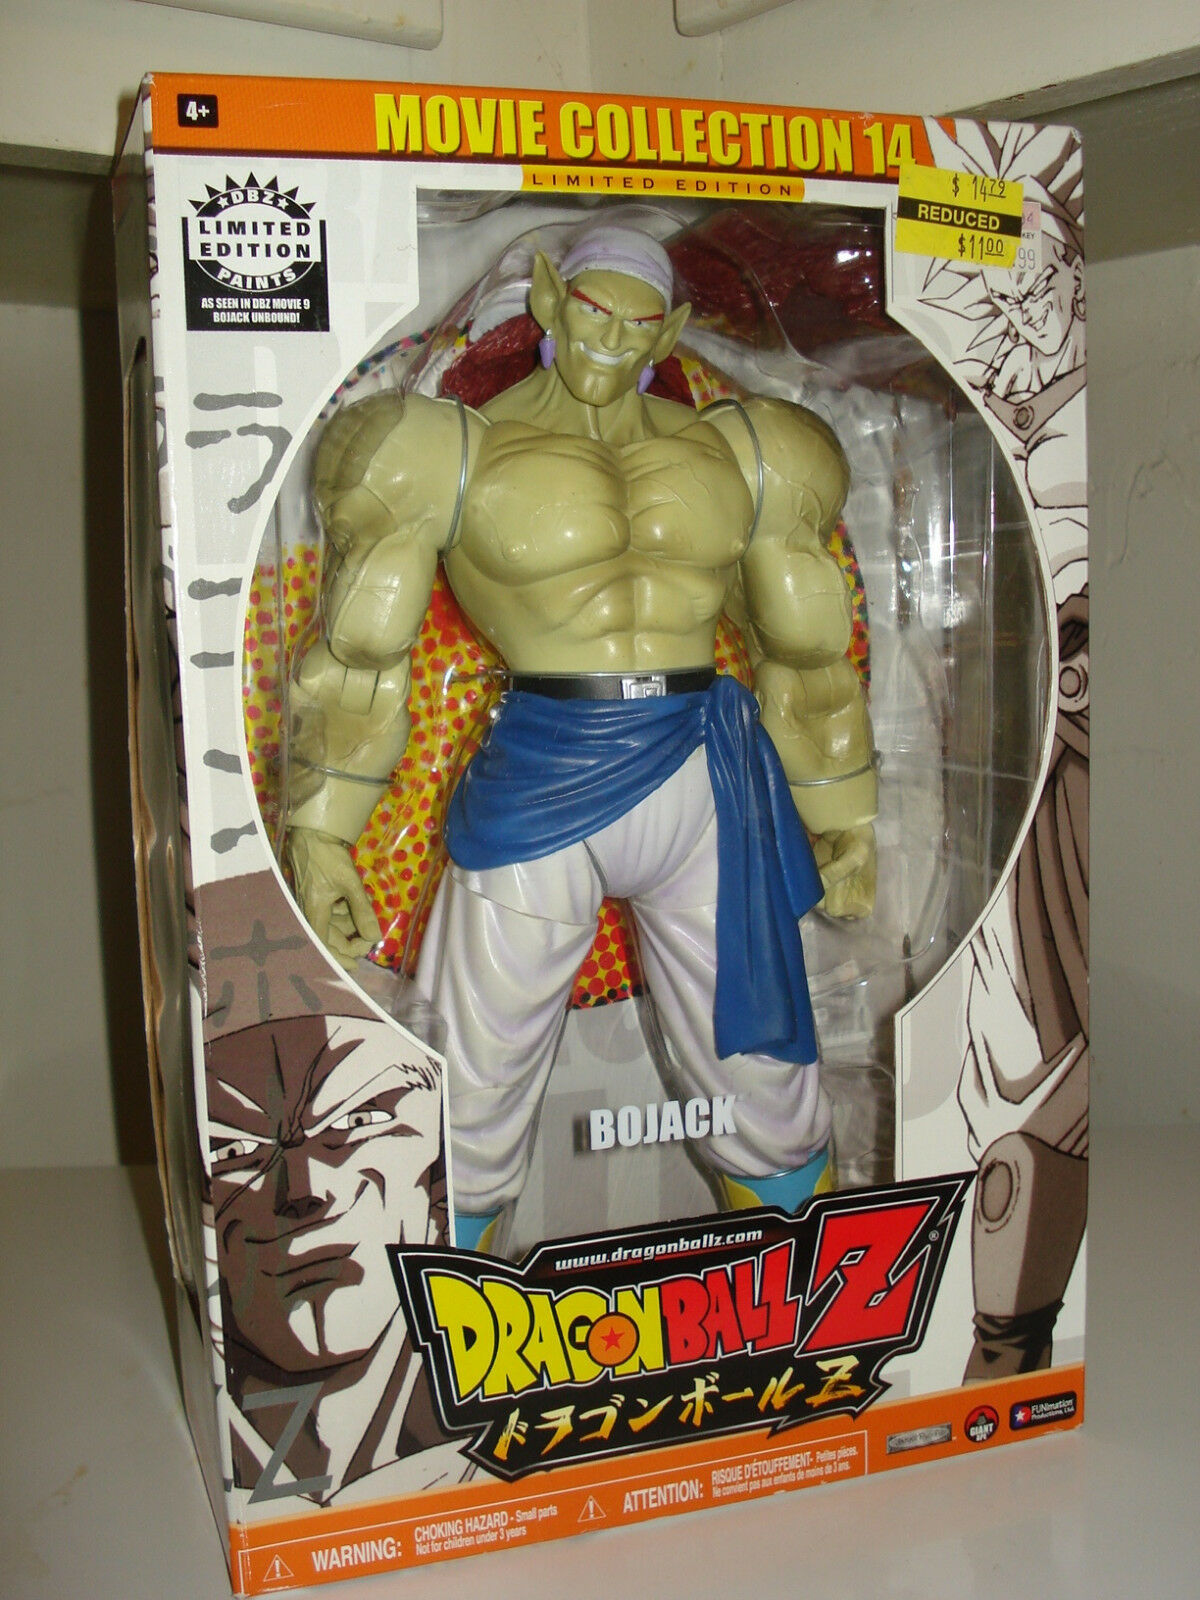 Dragonball Z Movie Collection 14 Bojack 10  Nuevo Hasbro